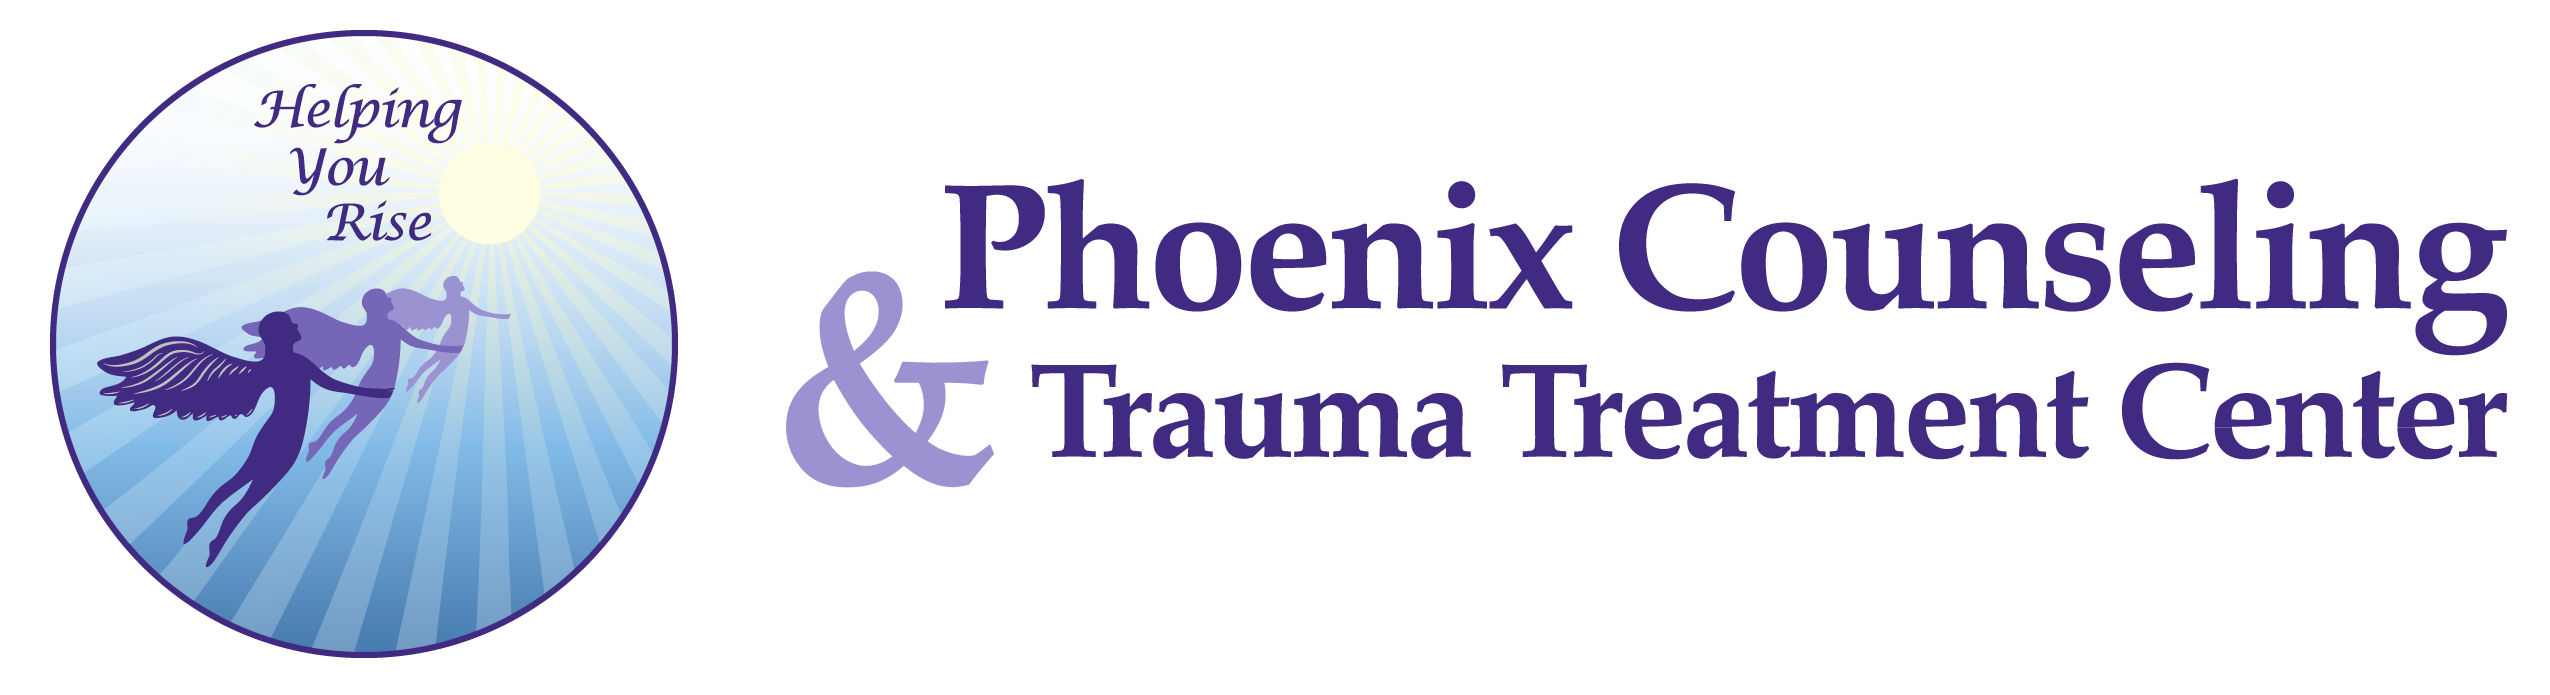 Phoenix Counseling & Trauma Treatment Center